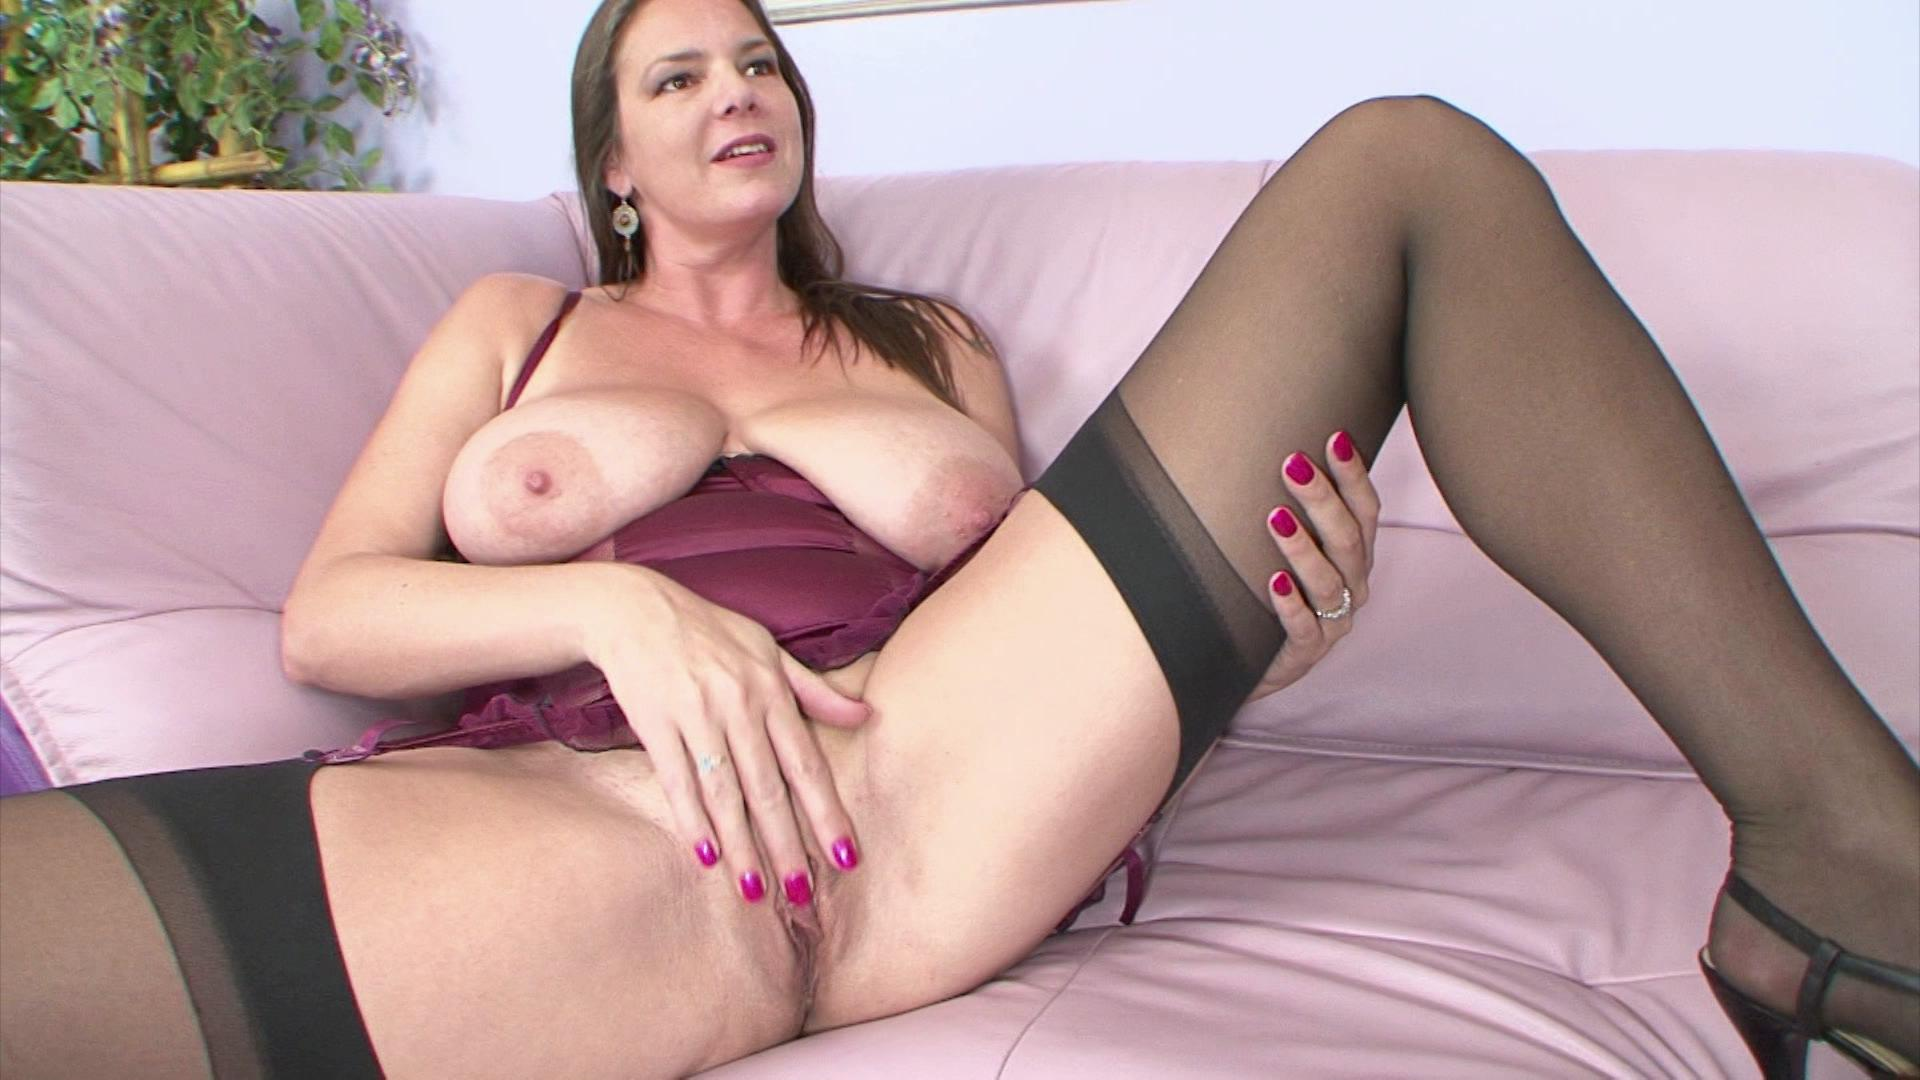 April knight calling all boobs 1